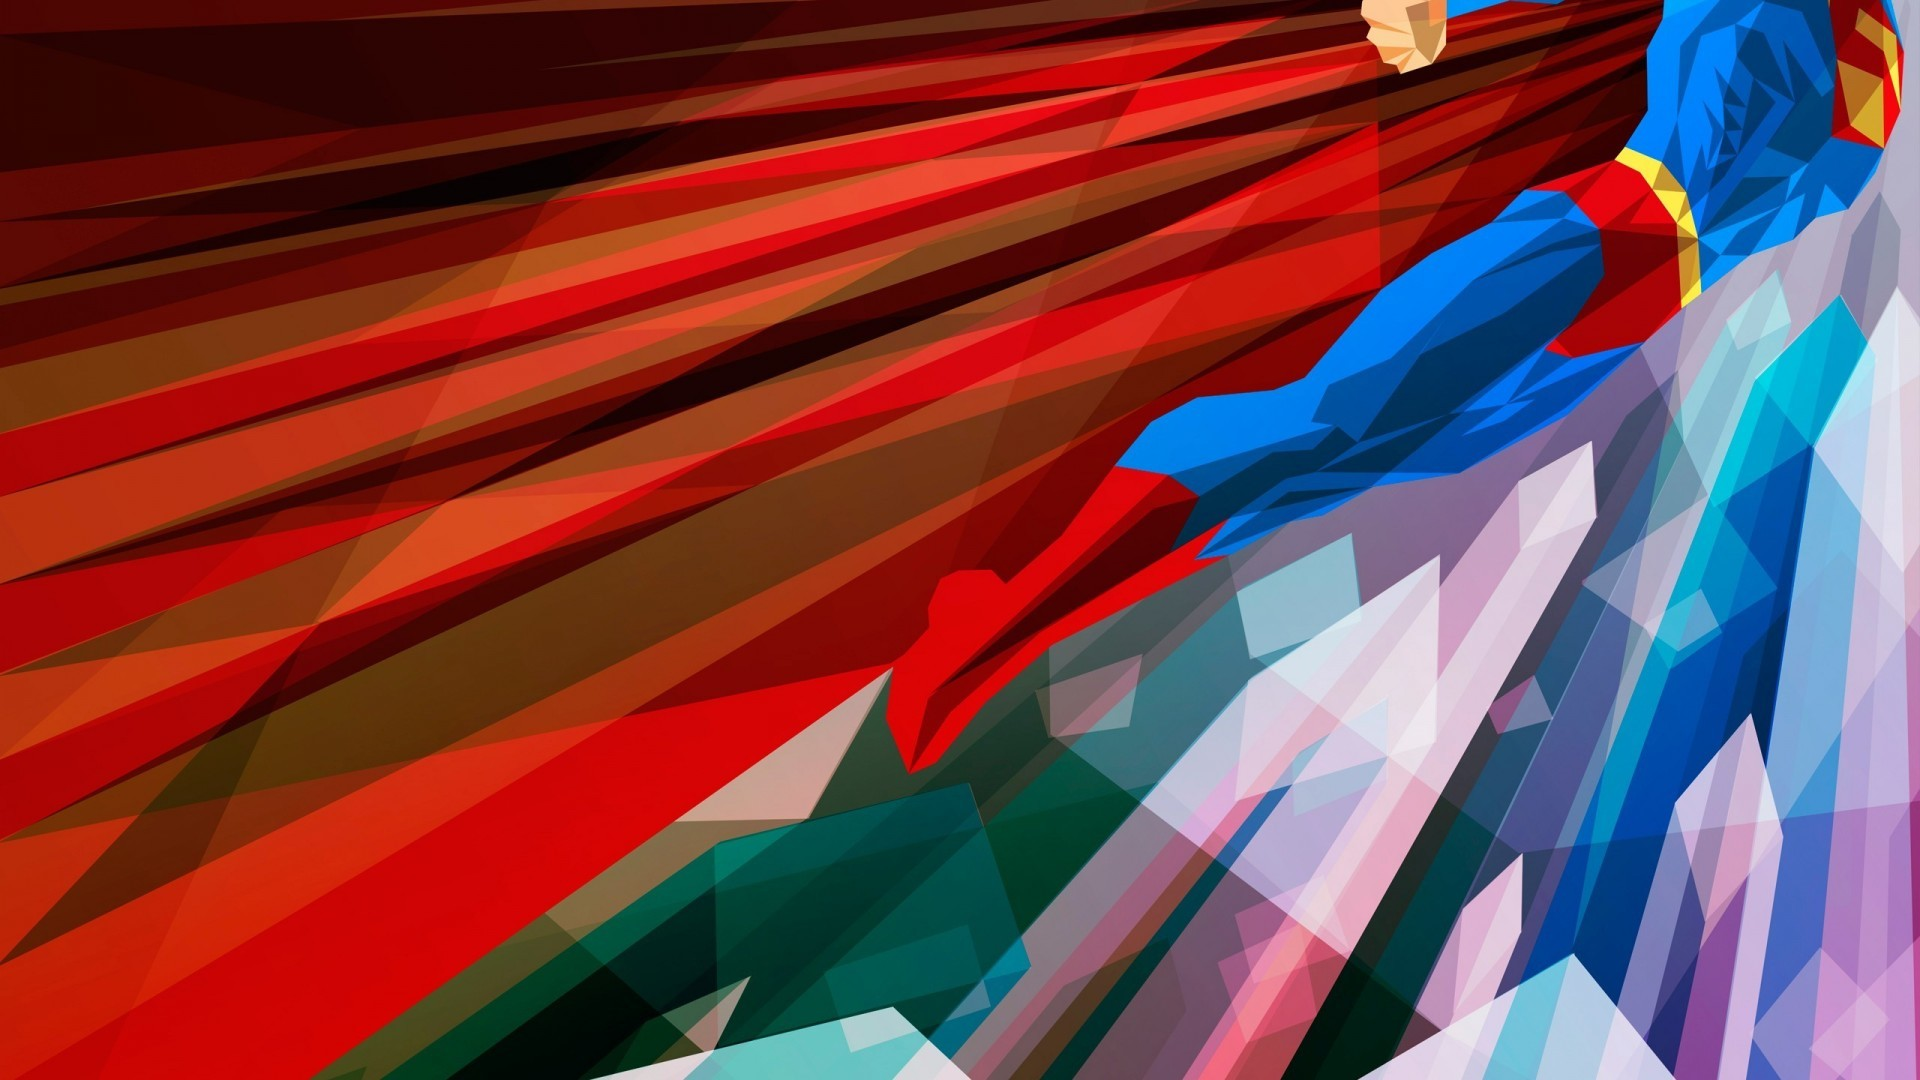 1920x1080 Superman Abstract 3D Wallpaper 1080P Super Man